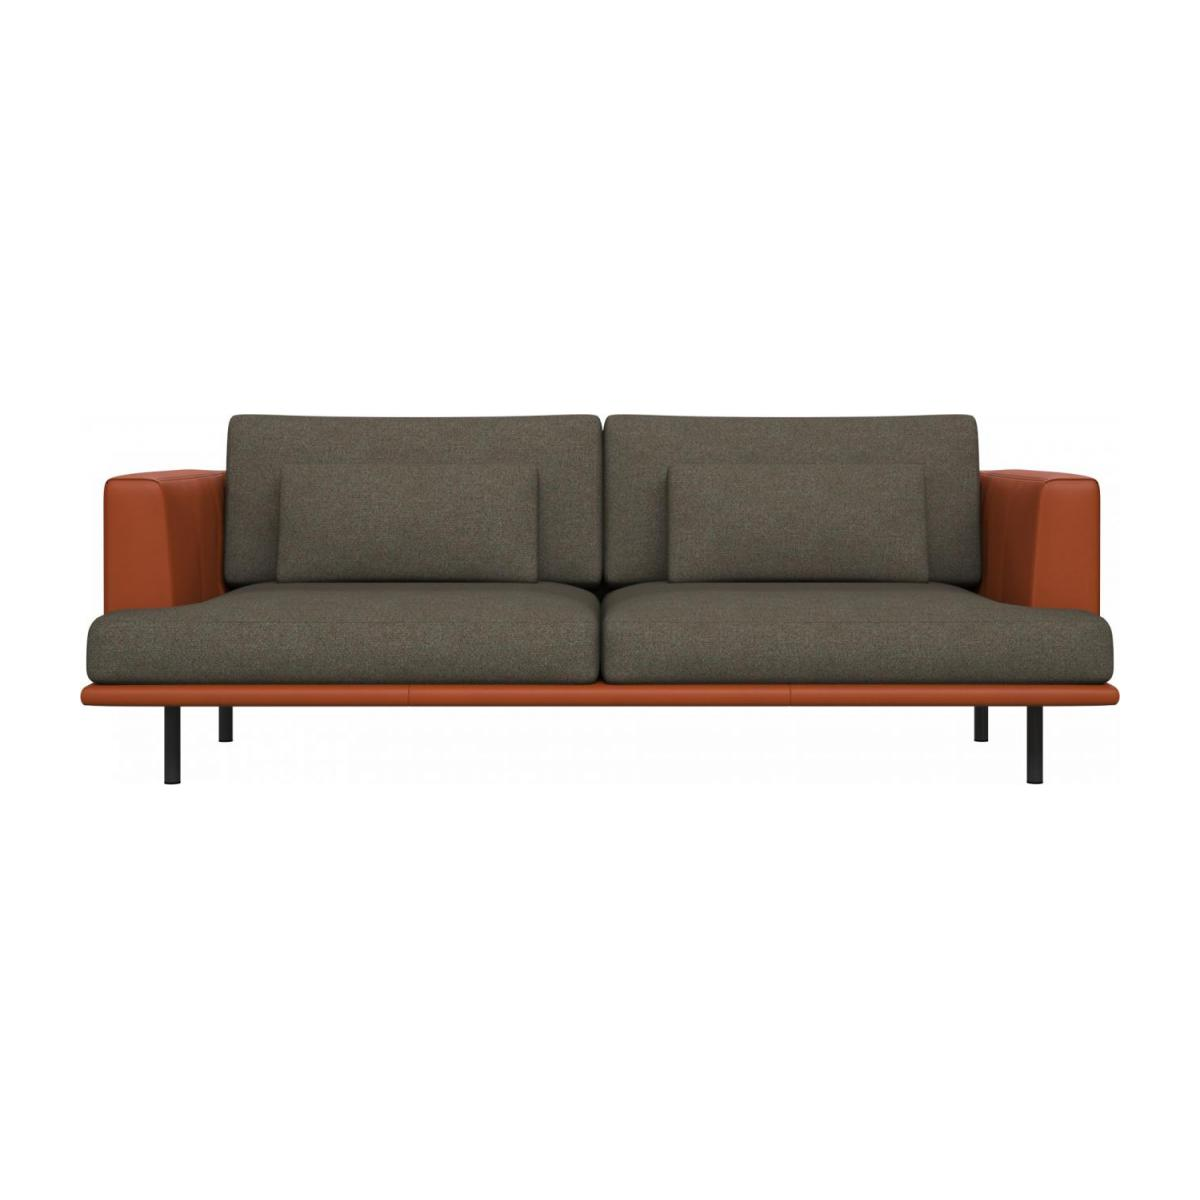 3 seater sofa in Lecce fabric, slade grey with base and armrests in brown leather n°2